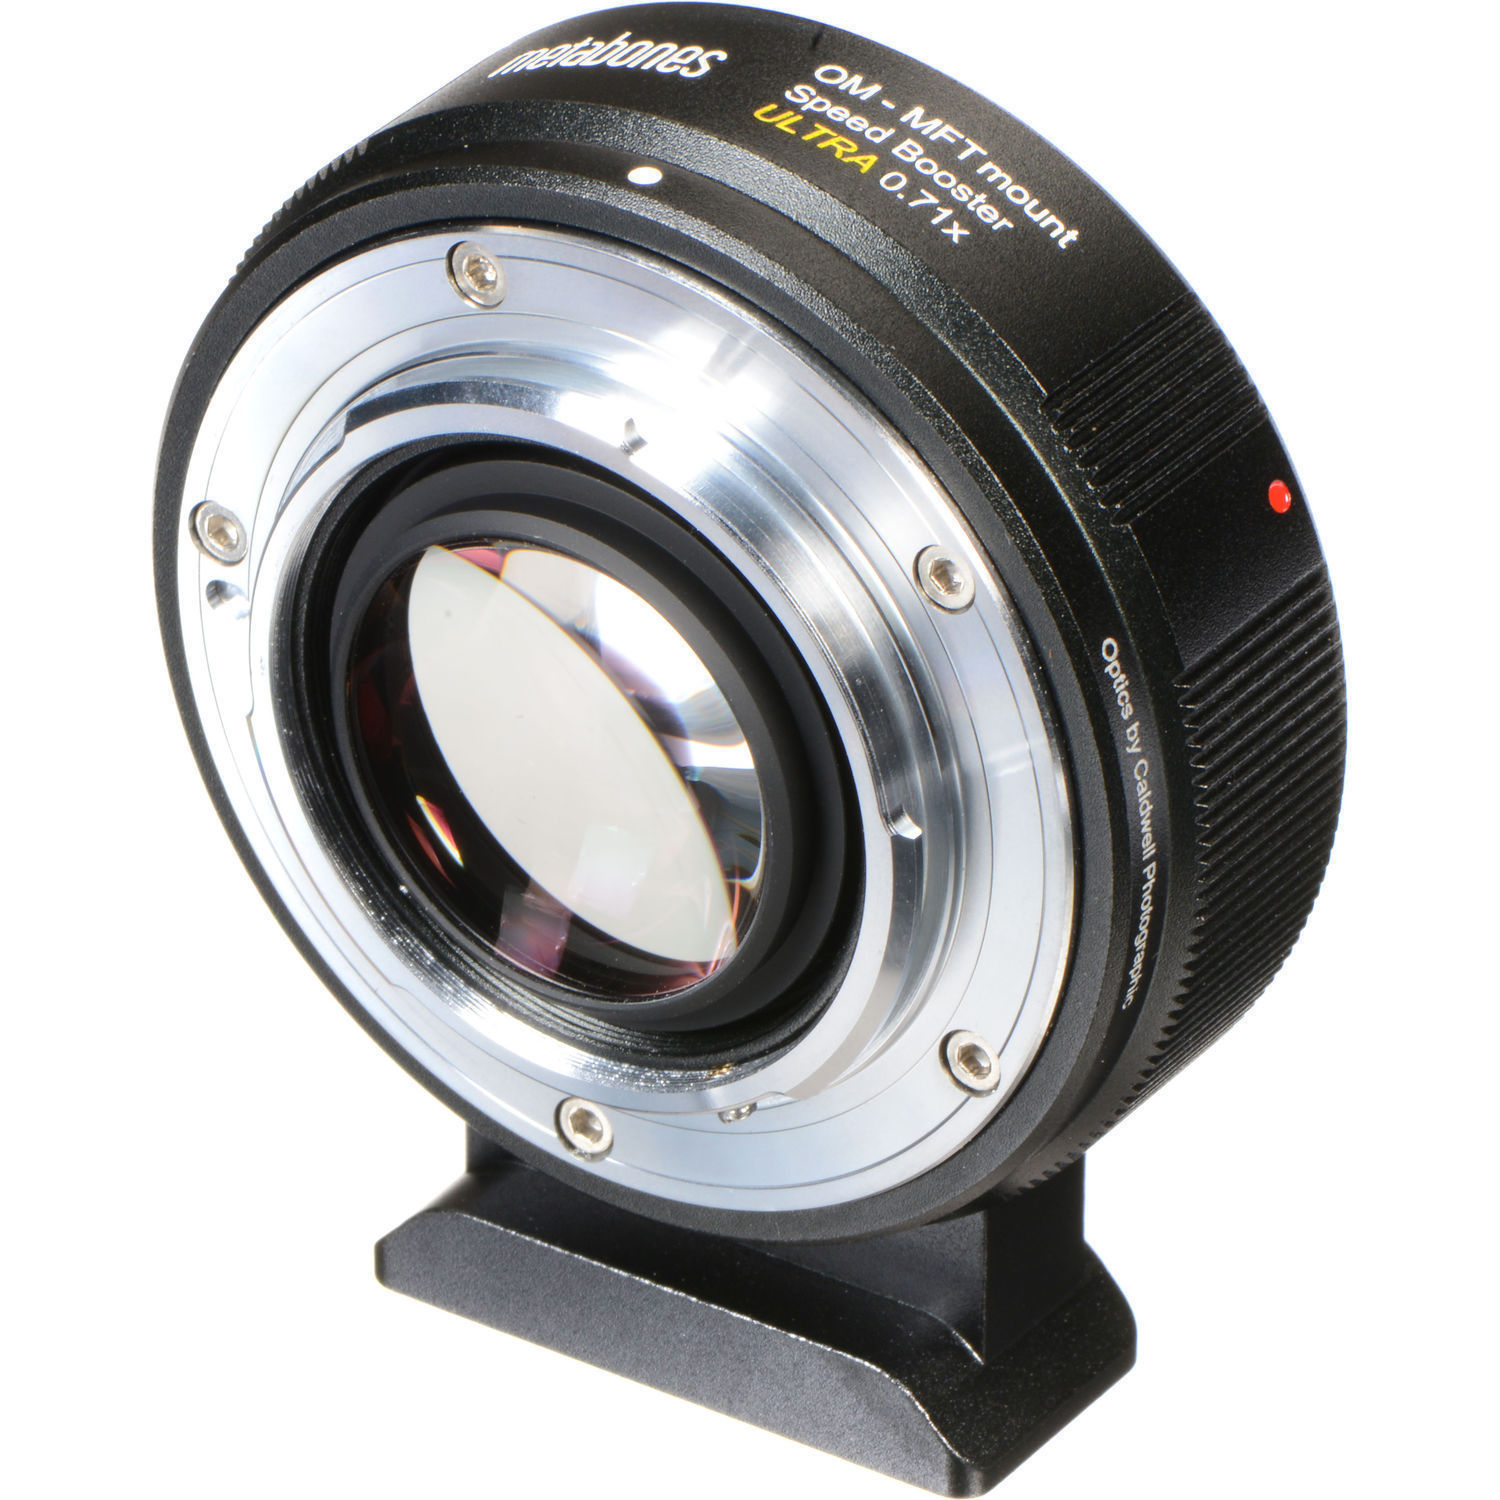 Metabones Speed Booster Ultra 0 71x Adapter for Olympus OM-Mount Lens to  Micro Four Thirds-Mount Camera